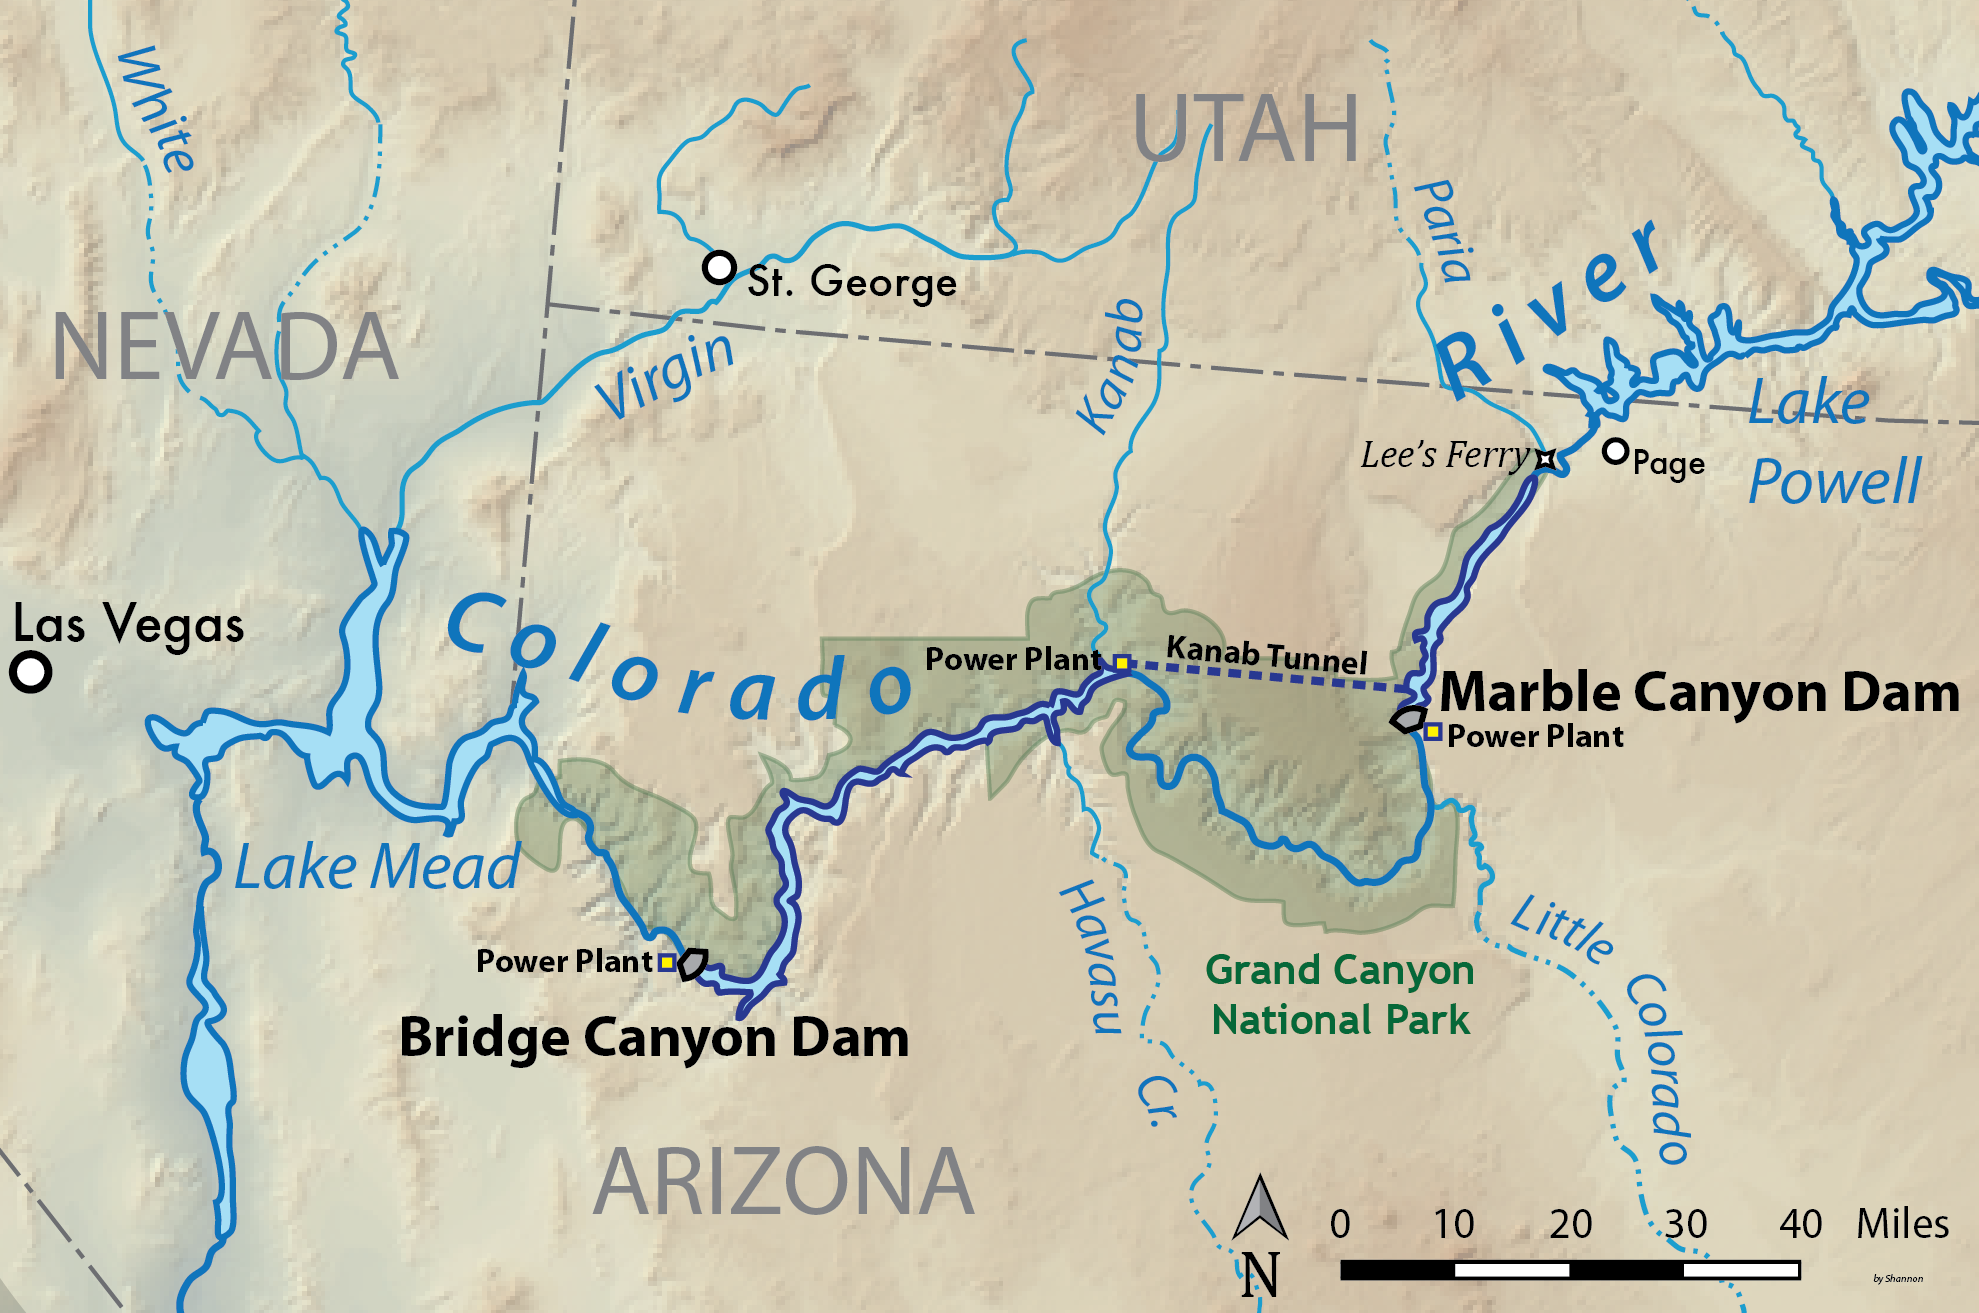 Bridge Canyon Dam - Wikipedia on map of red valley arizona, map of canyon de chelly arizona, map of santa fe arizona, map of antelope canyon arizona, map of arches national park utah, map of munds park arizona, map of mingus mountain arizona, map of tusayan arizona, map of la paz county arizona, map of four corners arizona, map of petrified forest national park arizona, map of cibecue arizona, map of horseshoe bend arizona, map of littlefield arizona, map of the mogollon rim arizona, map of fort defiance arizona, map of the painted desert arizona, map of lake mohave arizona, map of montezuma castle arizona, map of colorado arizona,